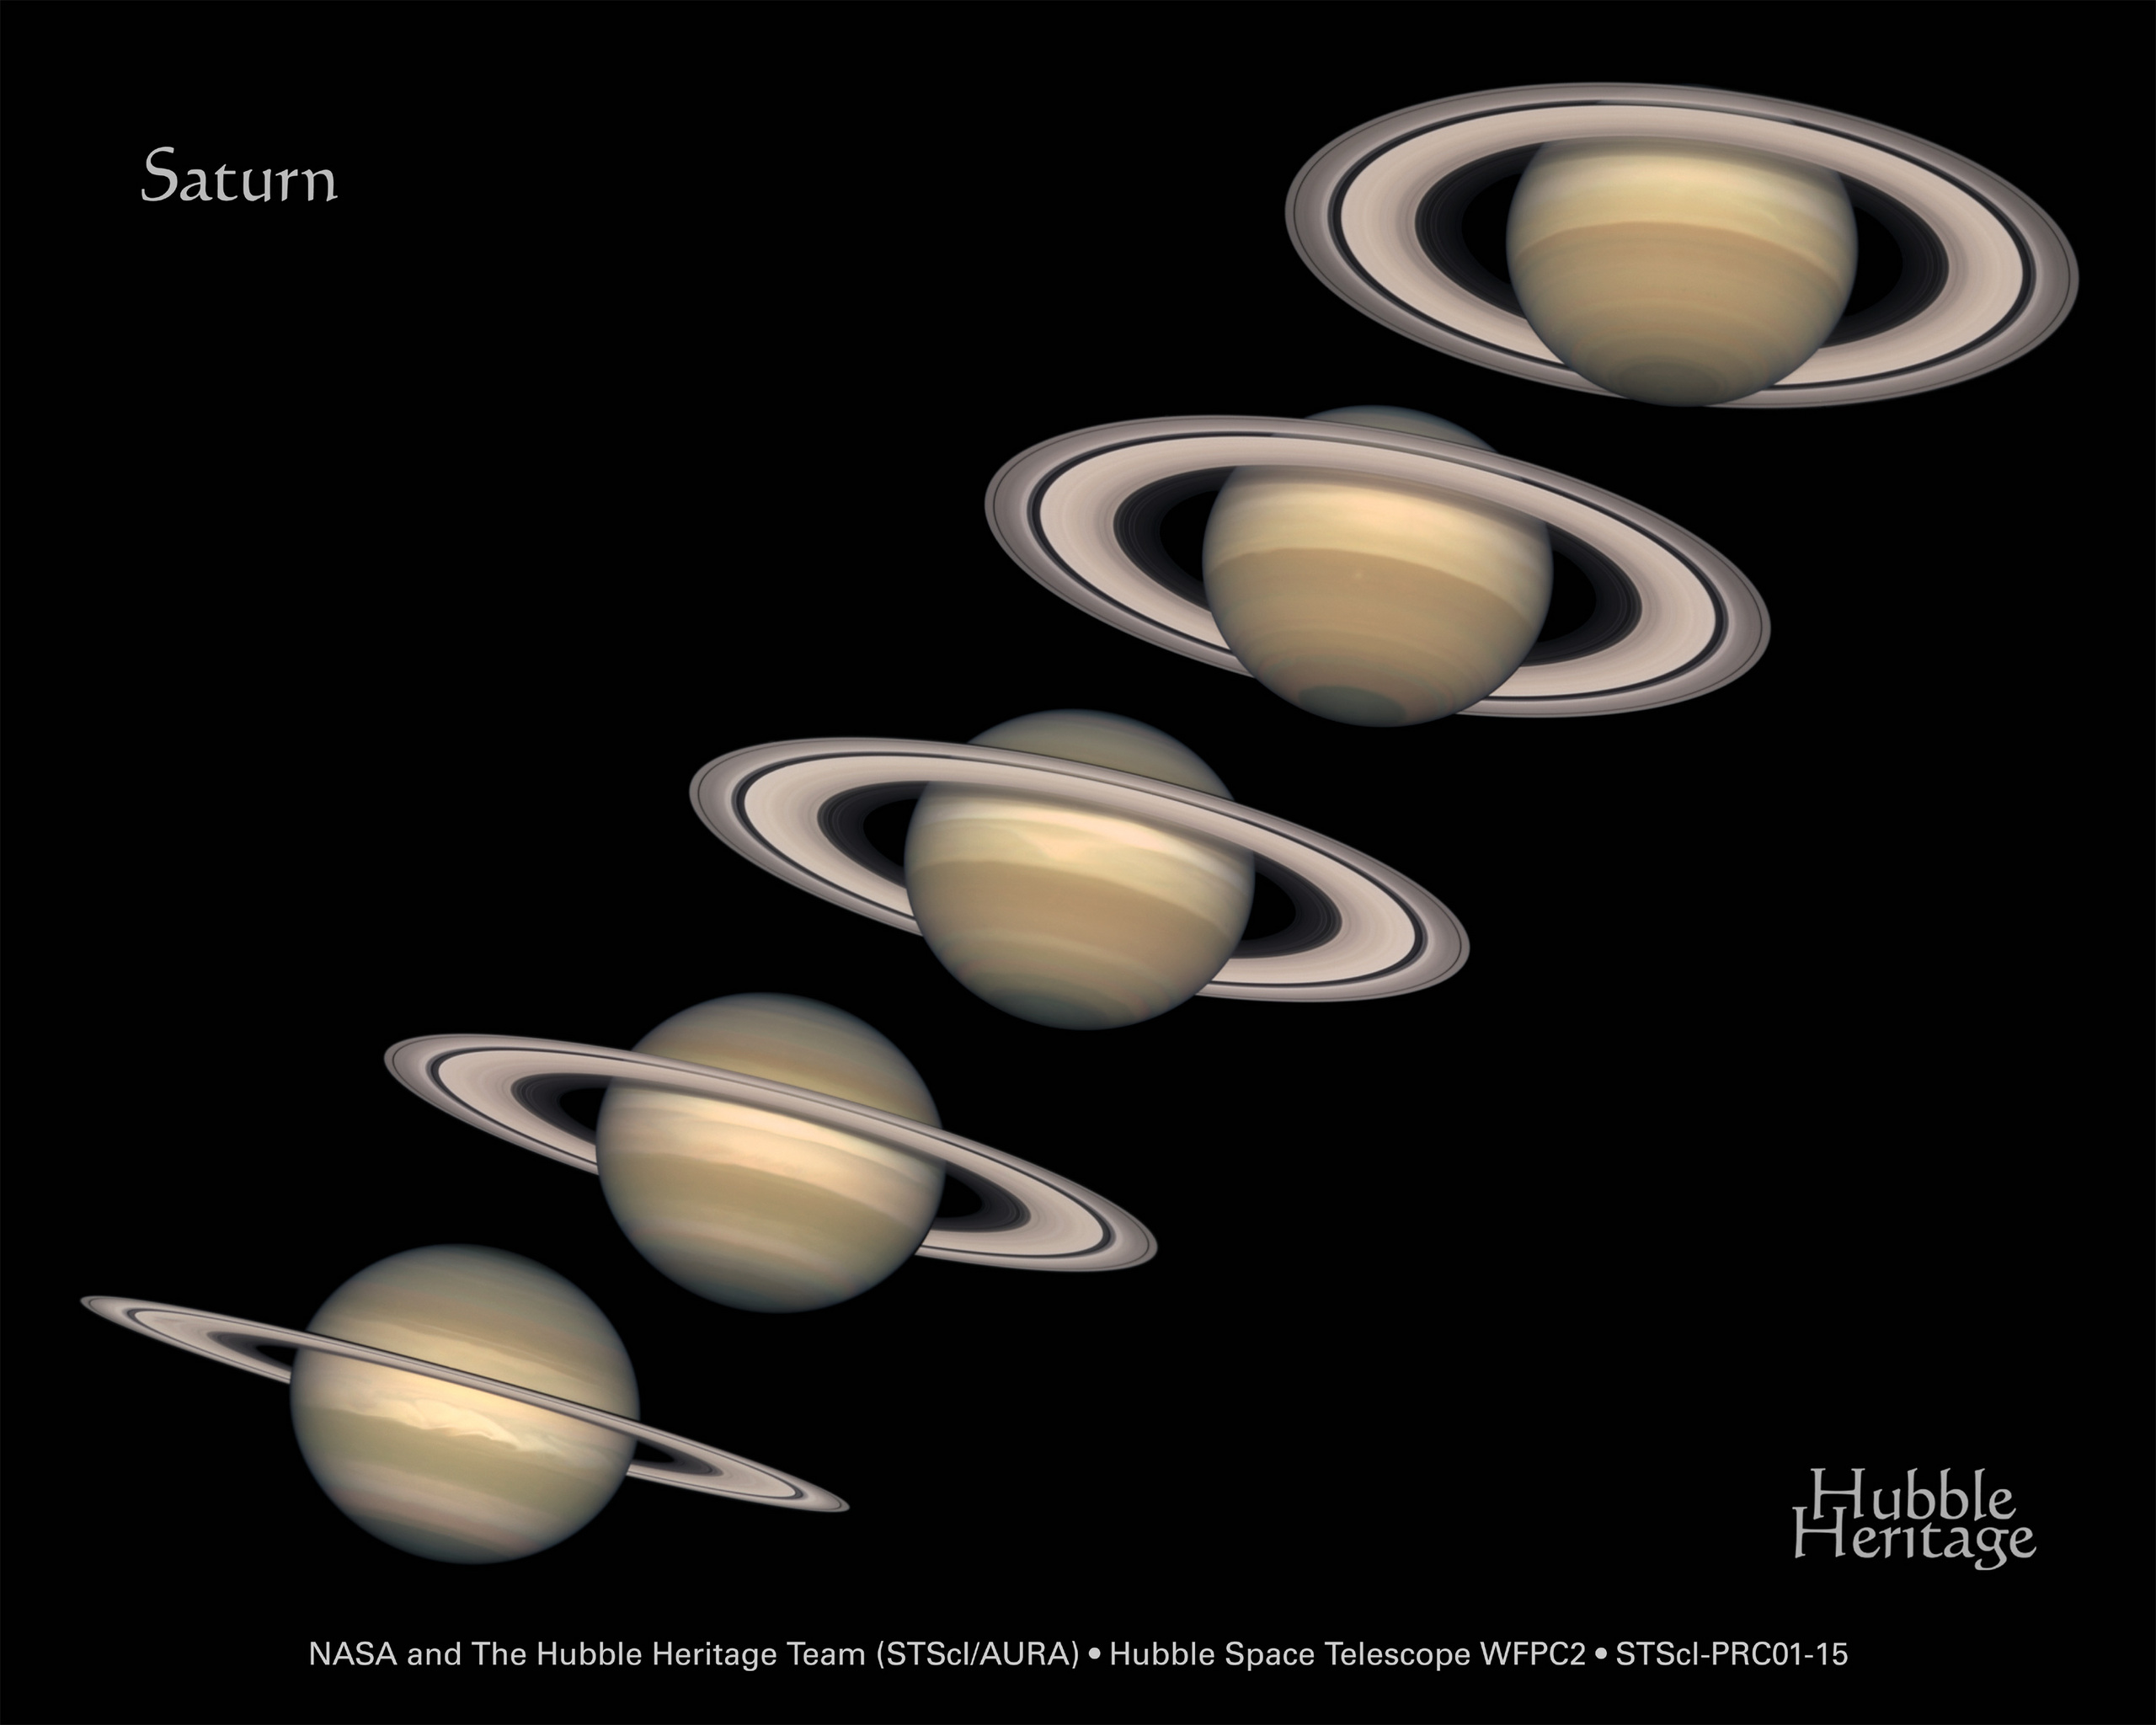 Saturn - Astronomy Wallpaper (30677407) - Fanpop